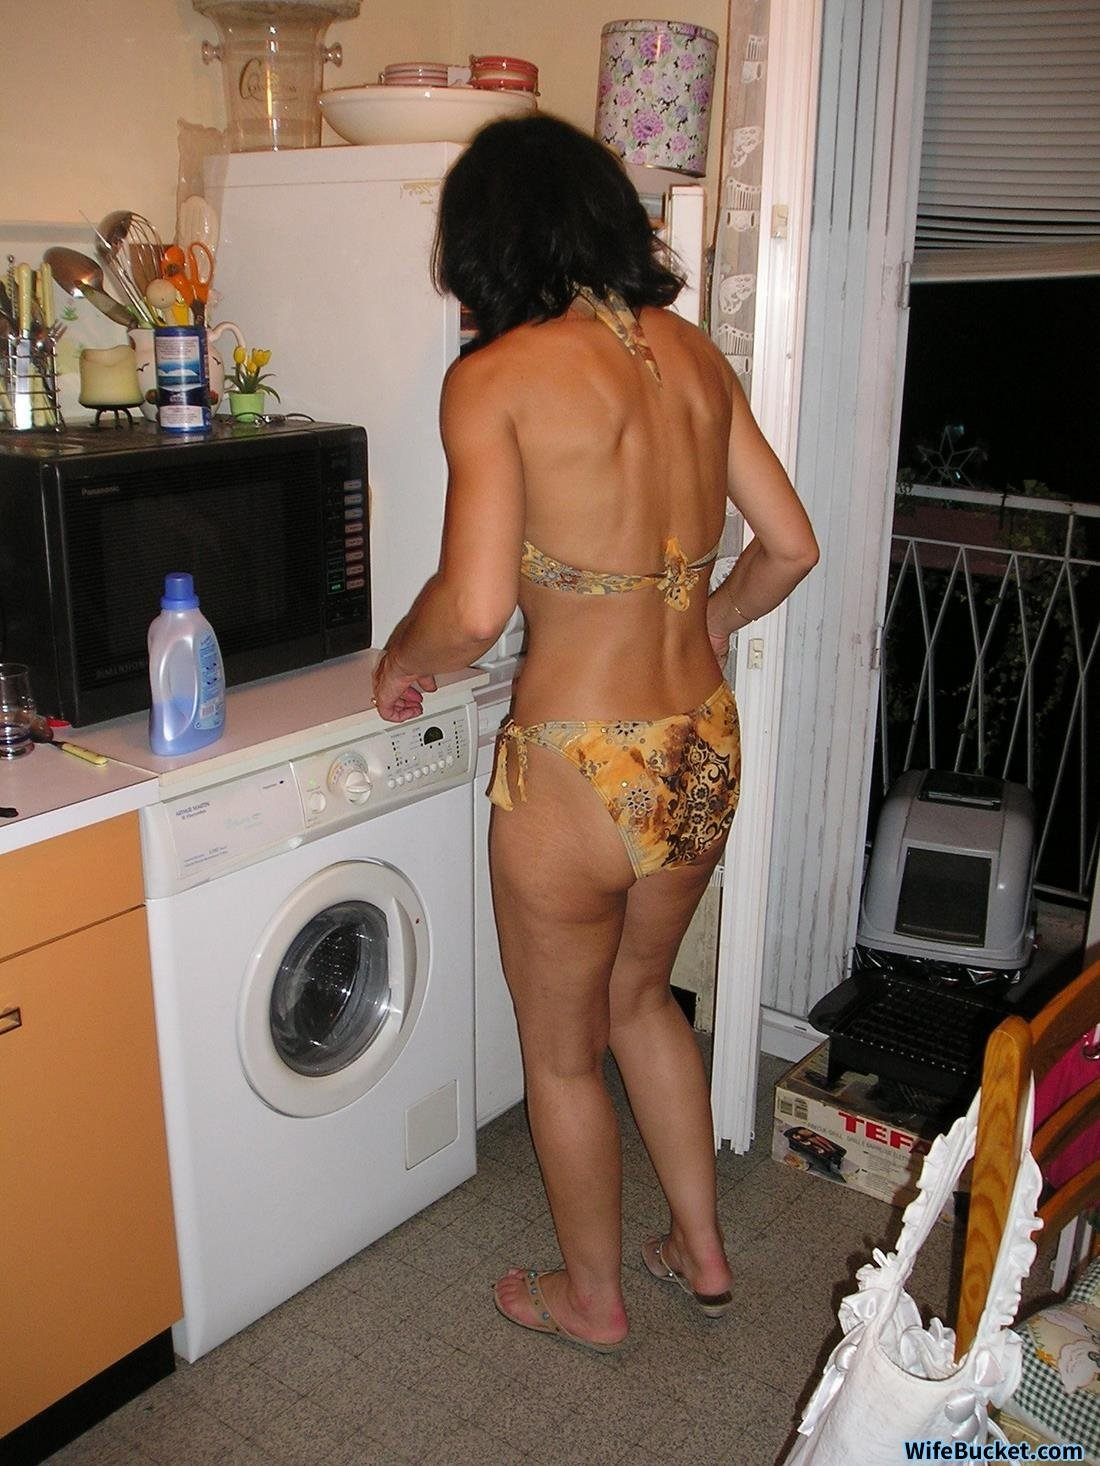 Cheating wife after husband went out Nude prob amateur